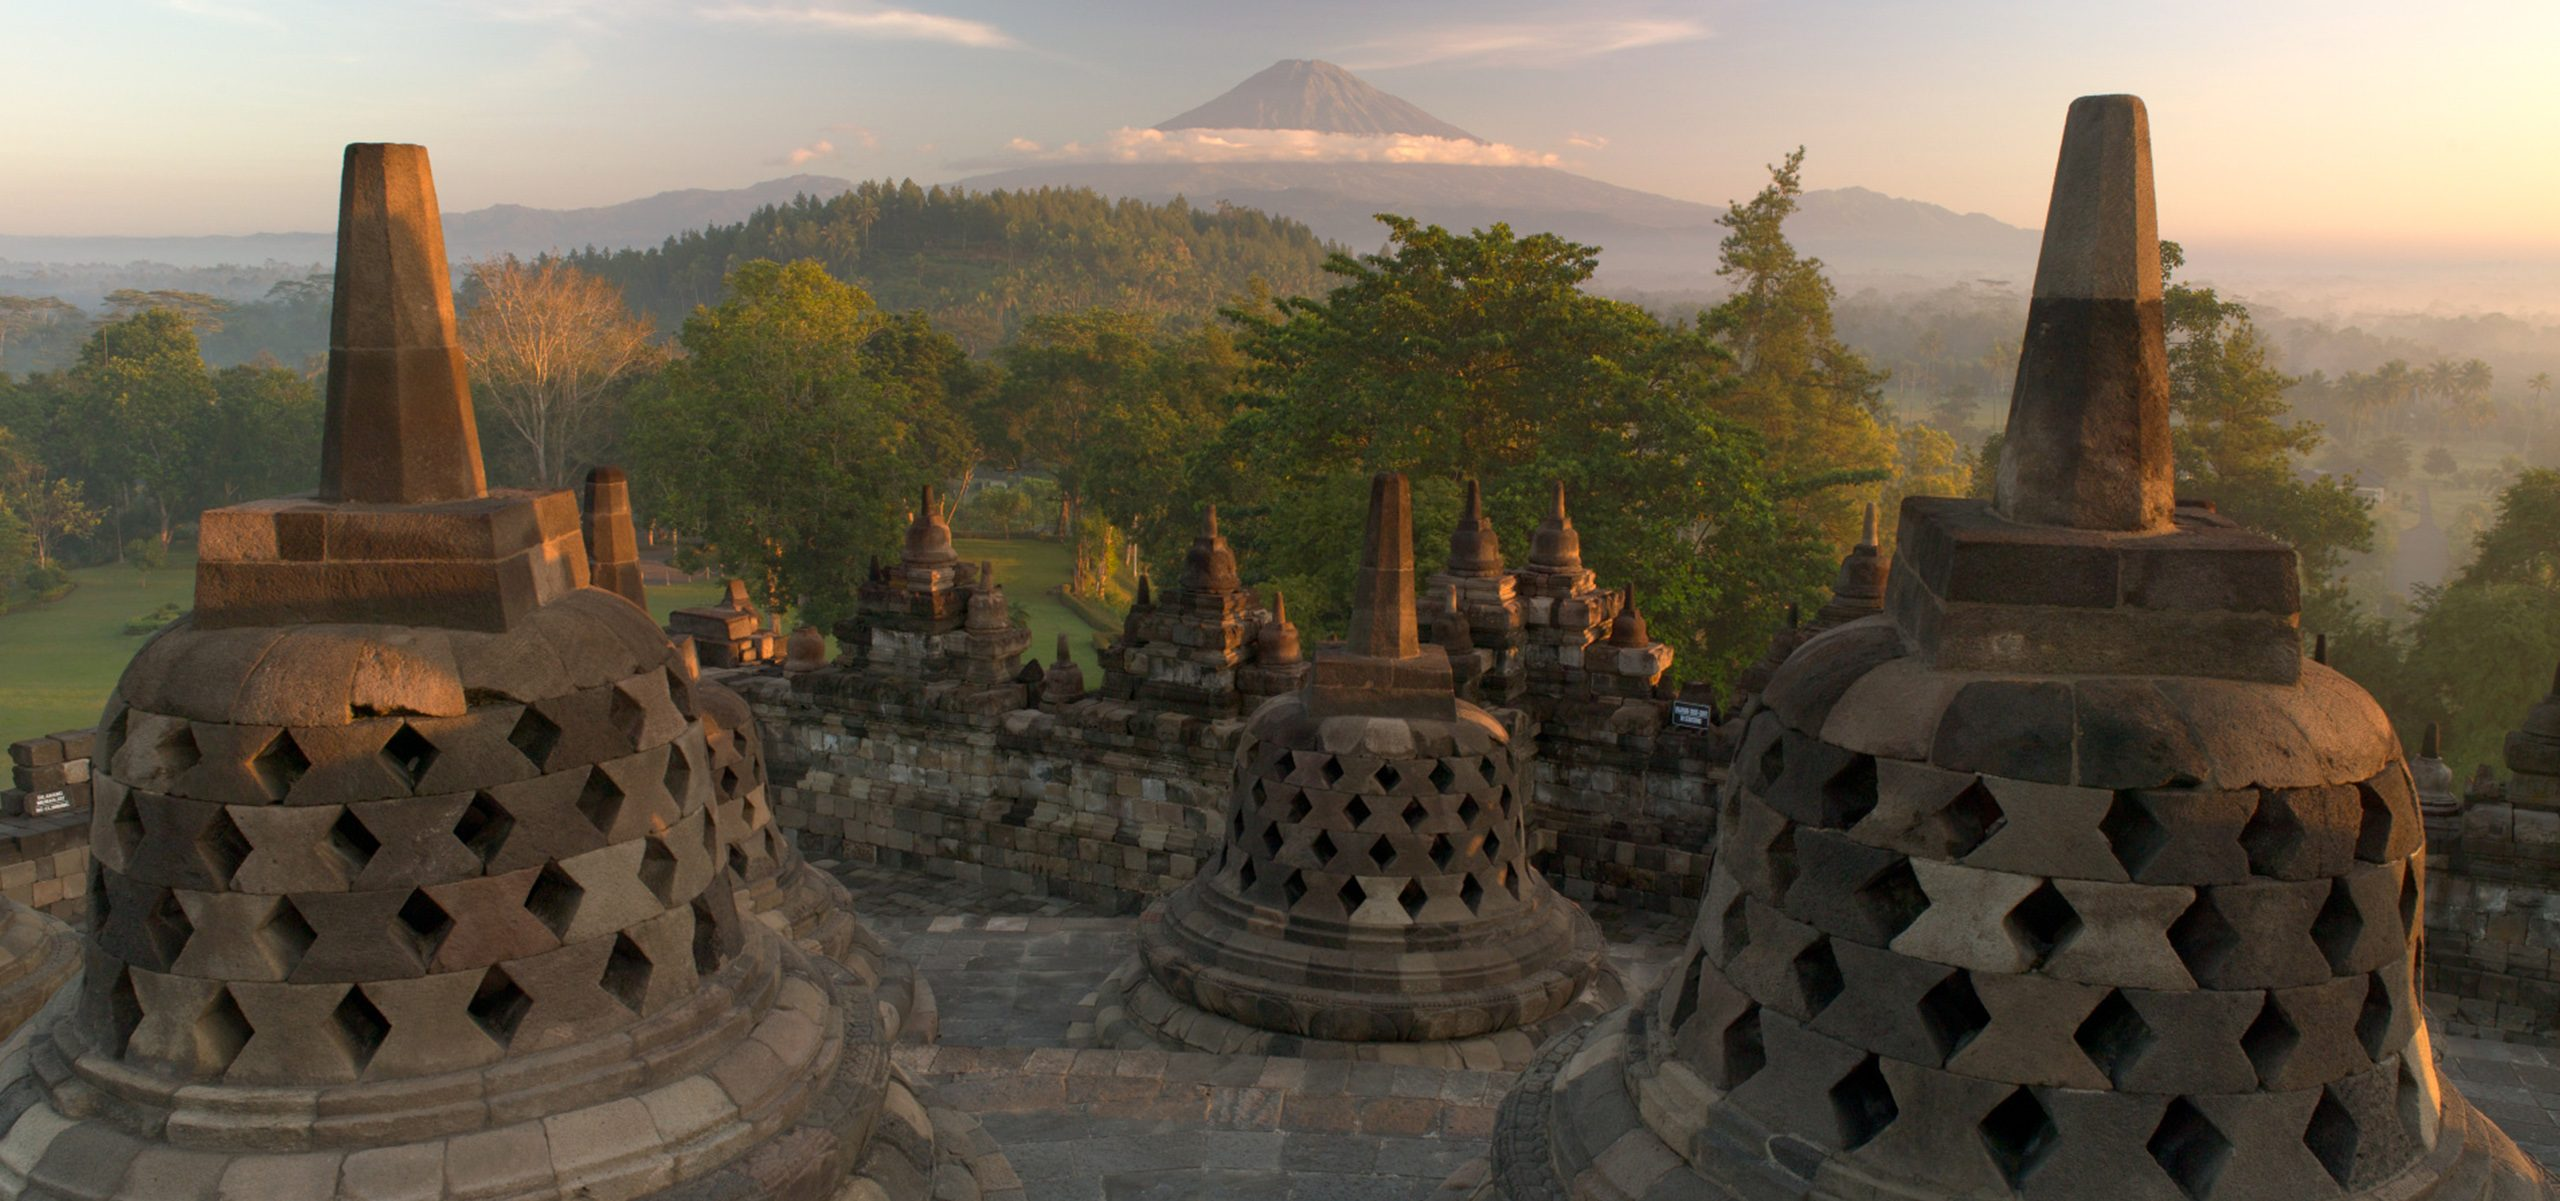 Indonesia-Borobudur Sunrise